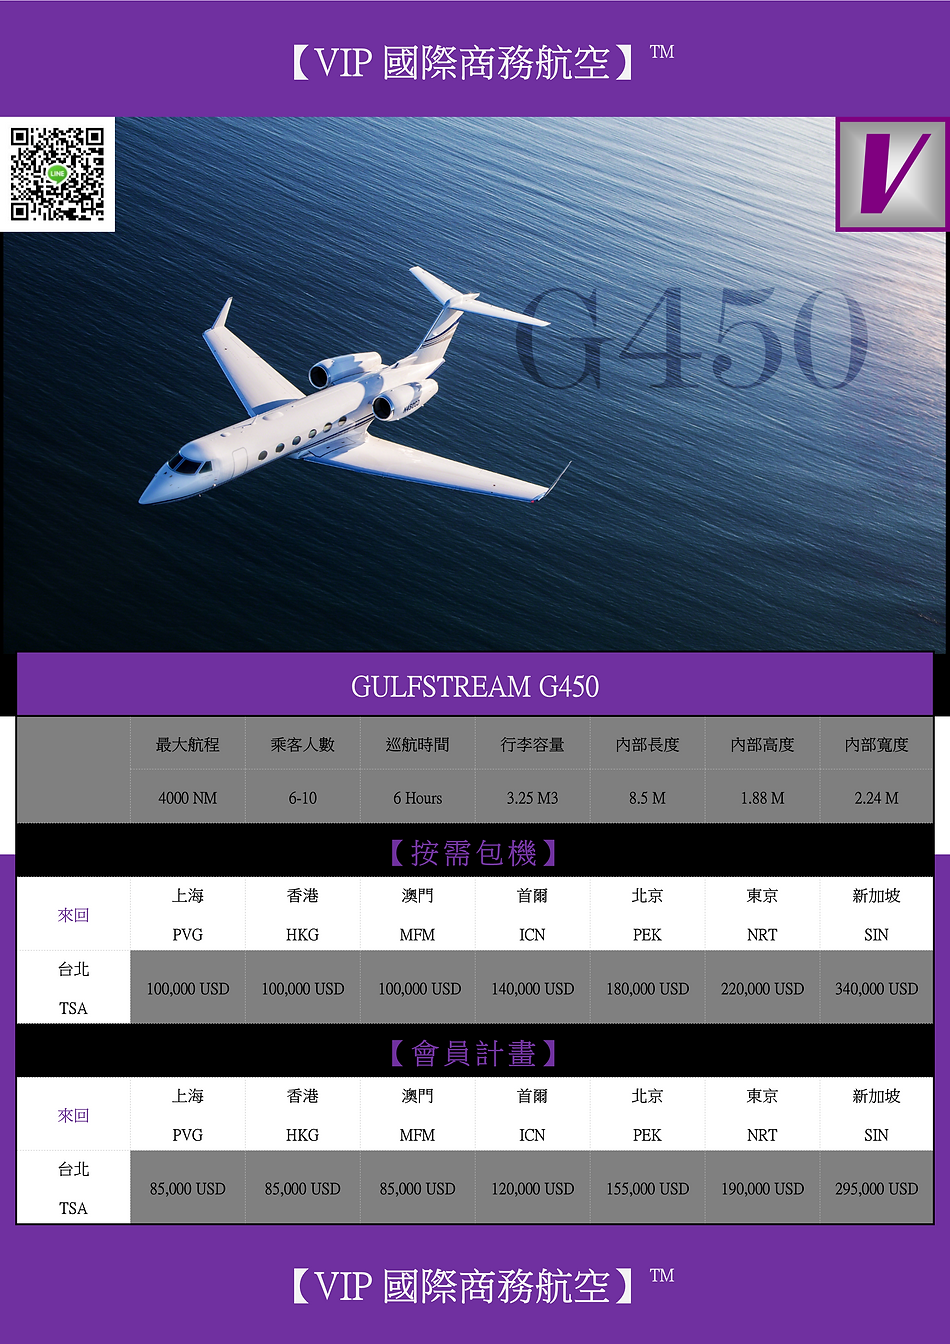 VIP GLOBAL GULFSTREAM G450 DM V2.png